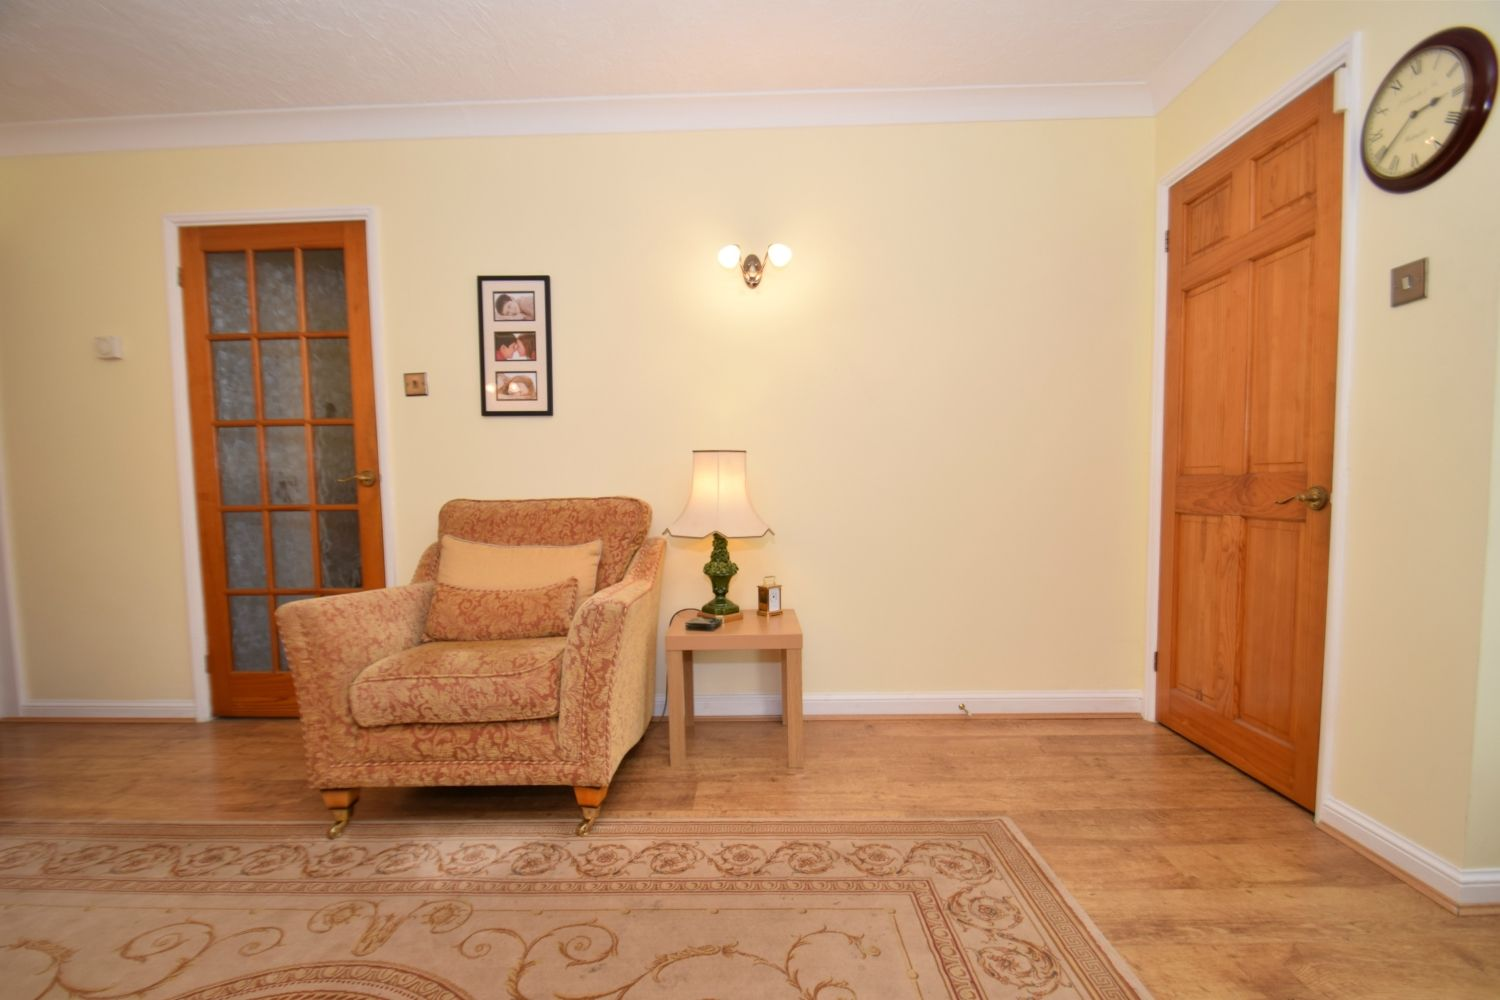 3 bed detached for sale in Foxes Close, Blackwell, B60 6